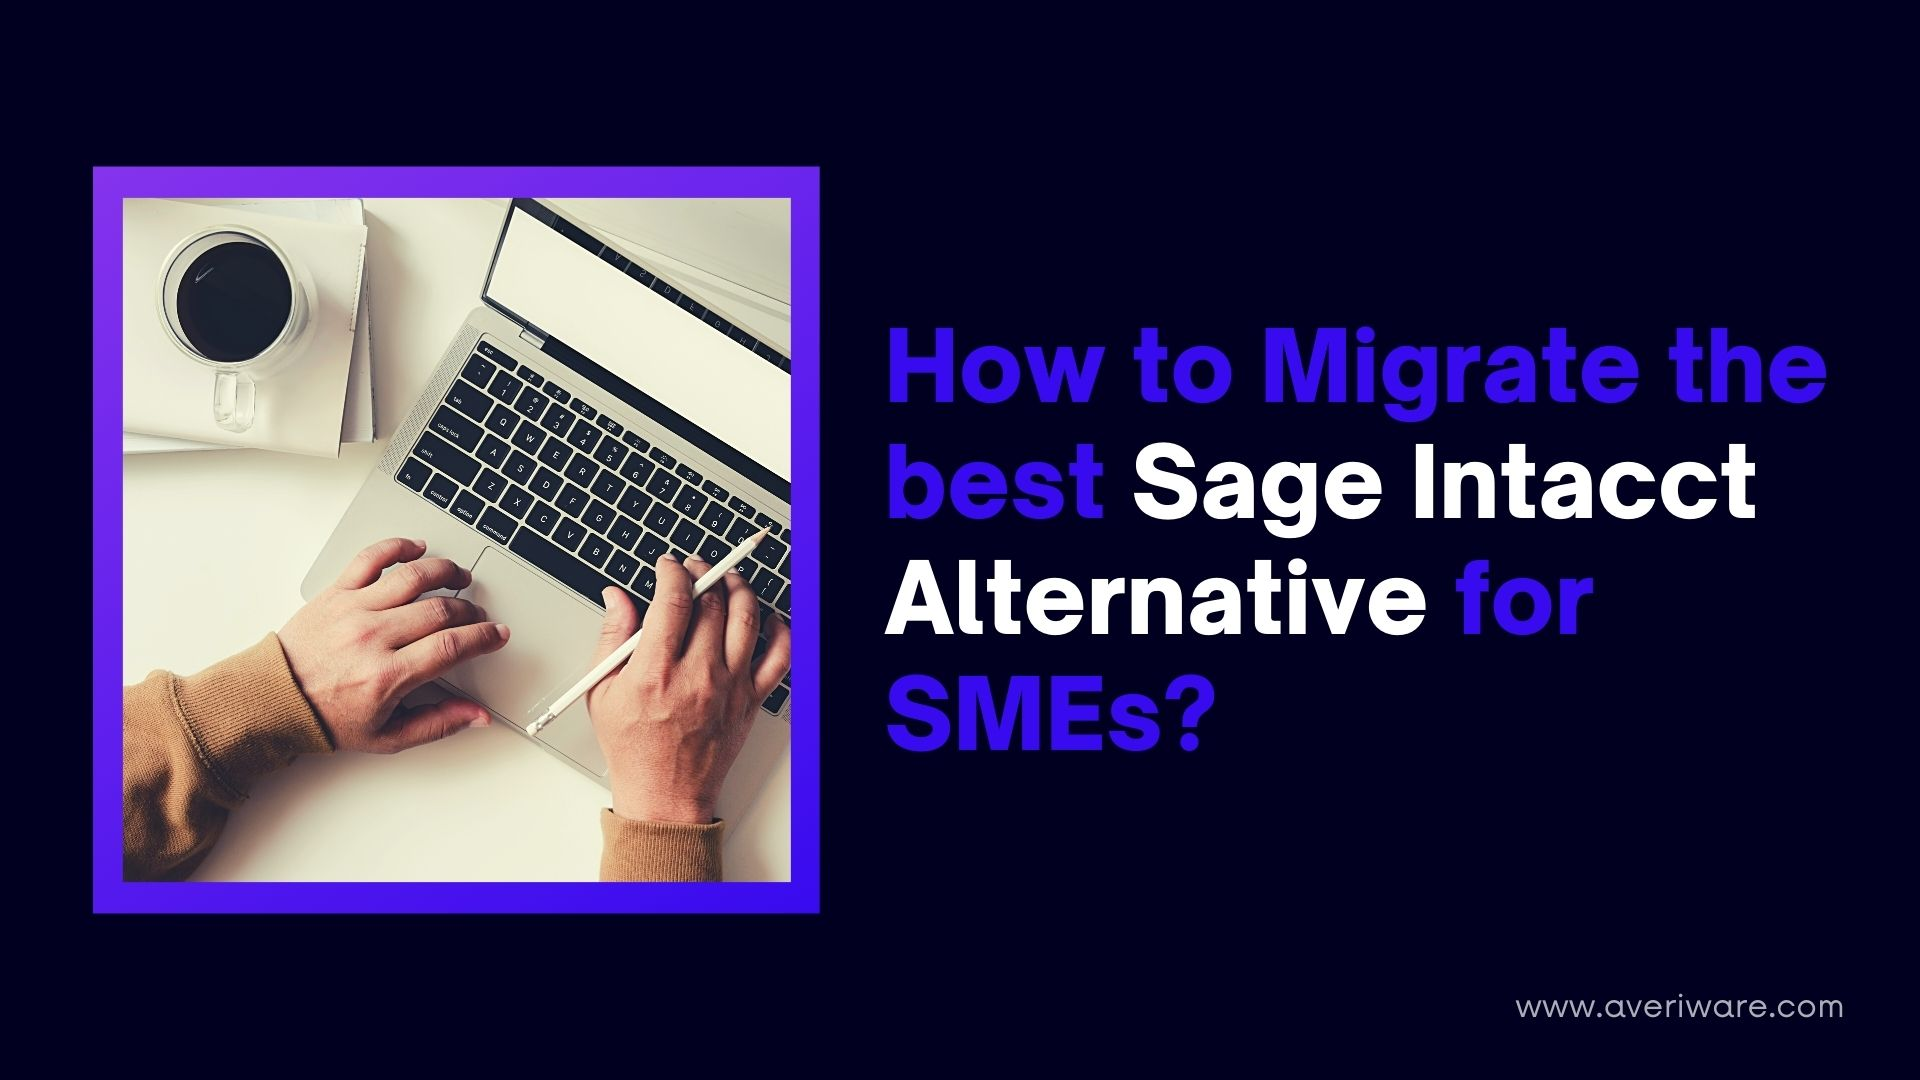 the-best-Sage-Intacct-Alternative-for-SMEs